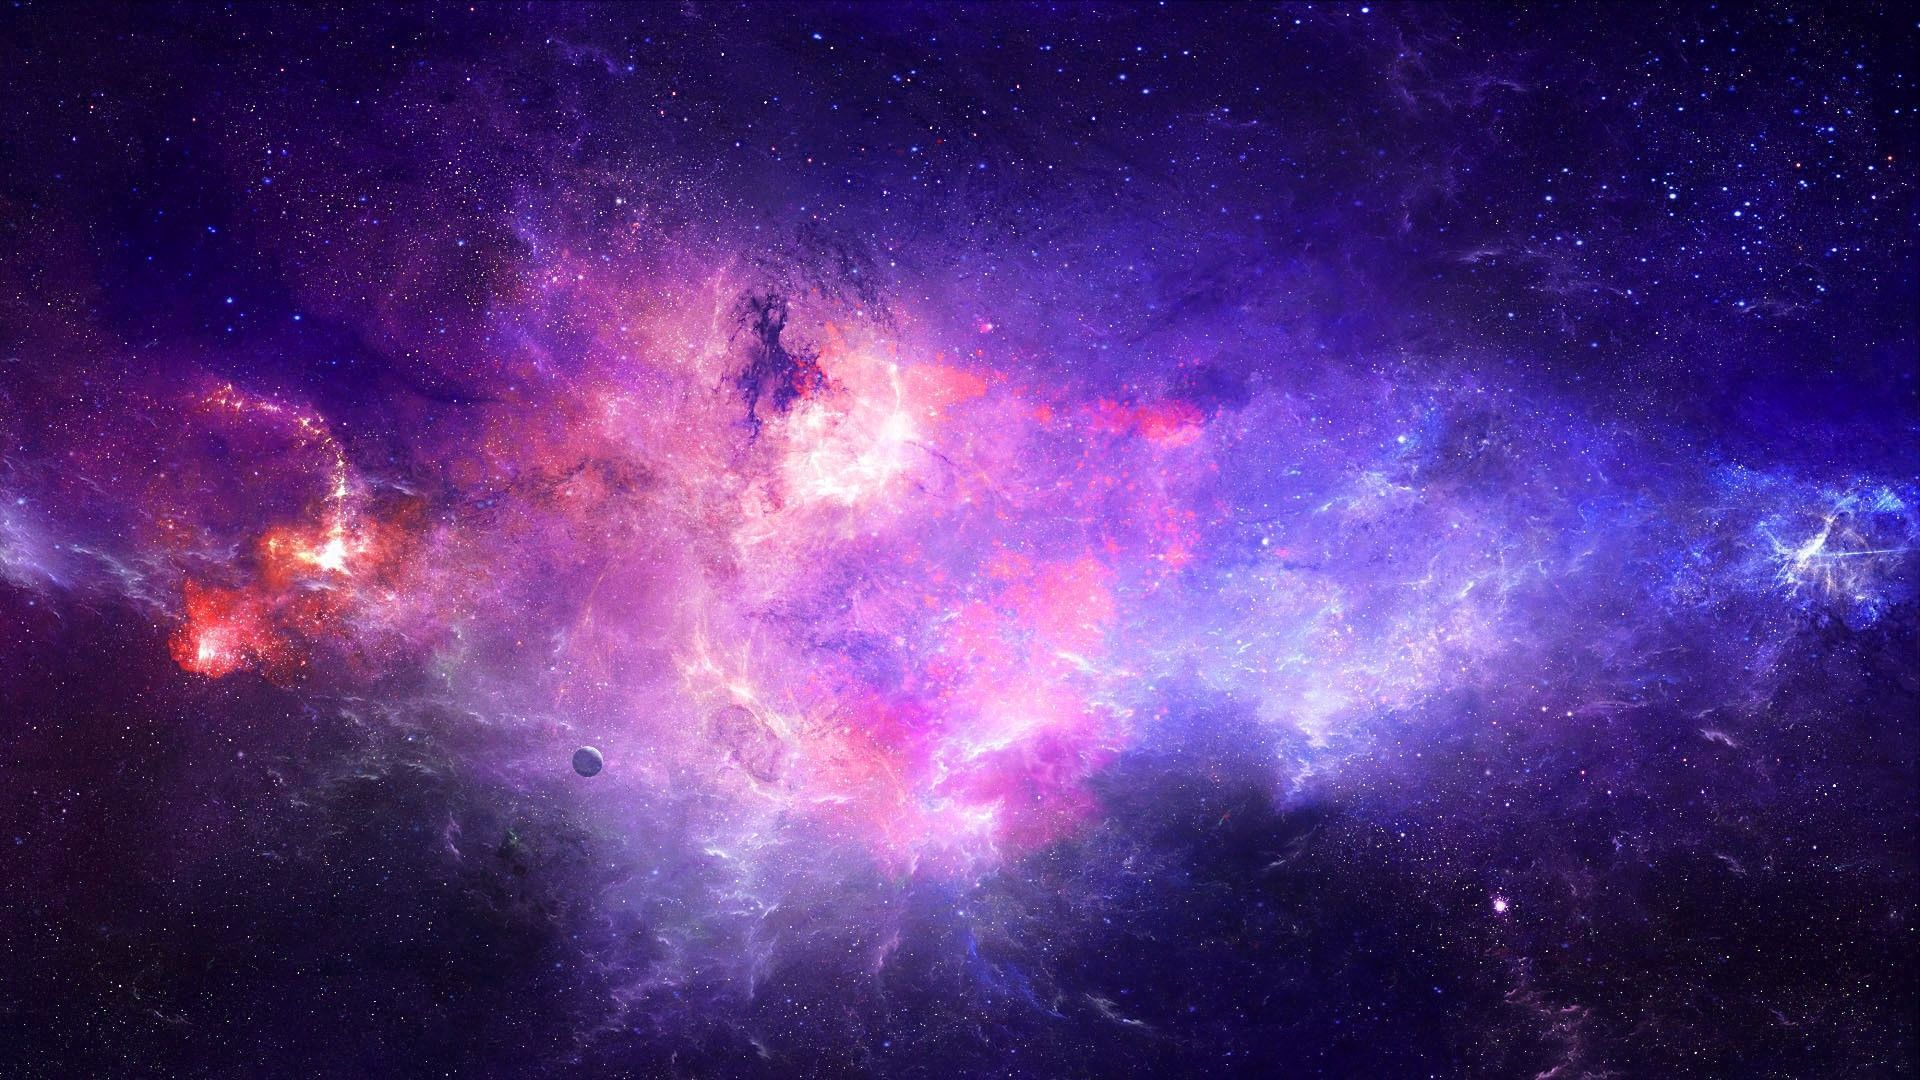 Be Interested Take A Look At This Space Galaxy Animated Wallpaper ...